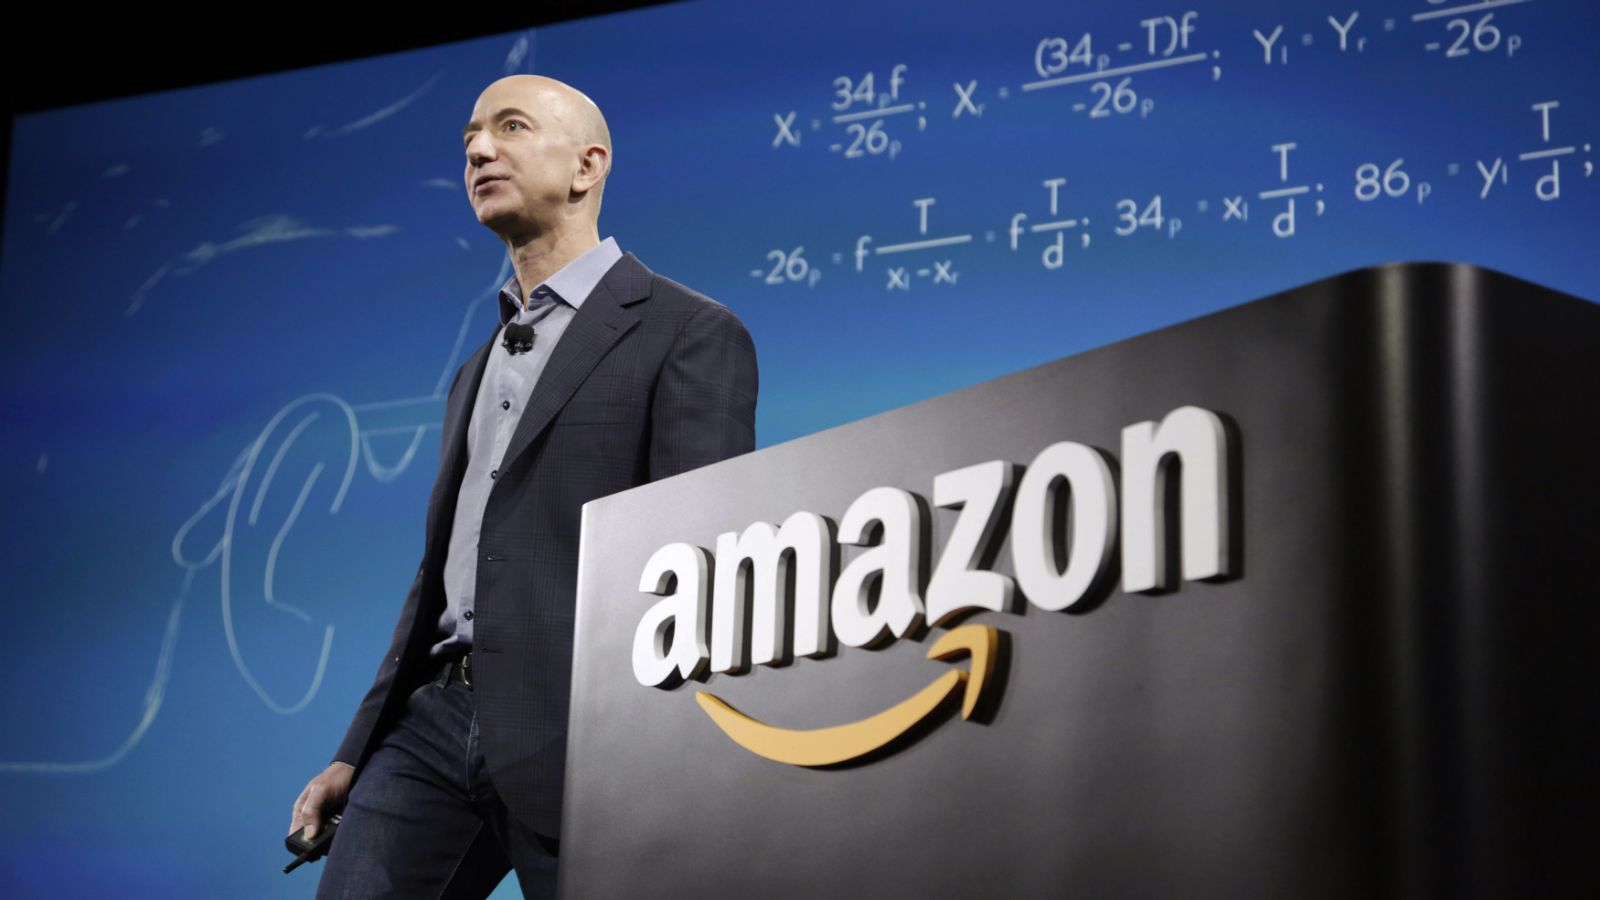 """Amazon CEO Jeff Bezos discusses his company's new Fire smartphone at a news conference in Seattle, Washington June 18, 2014. Bezos unveiled a $200 """"Fire"""" smartphone on Wednesday equipped with a 3D-capable screen and an ability to recognize music and TV shows, hoping to stand out in a crowded field dominated by Apple Inc and Samsung Electronics."""